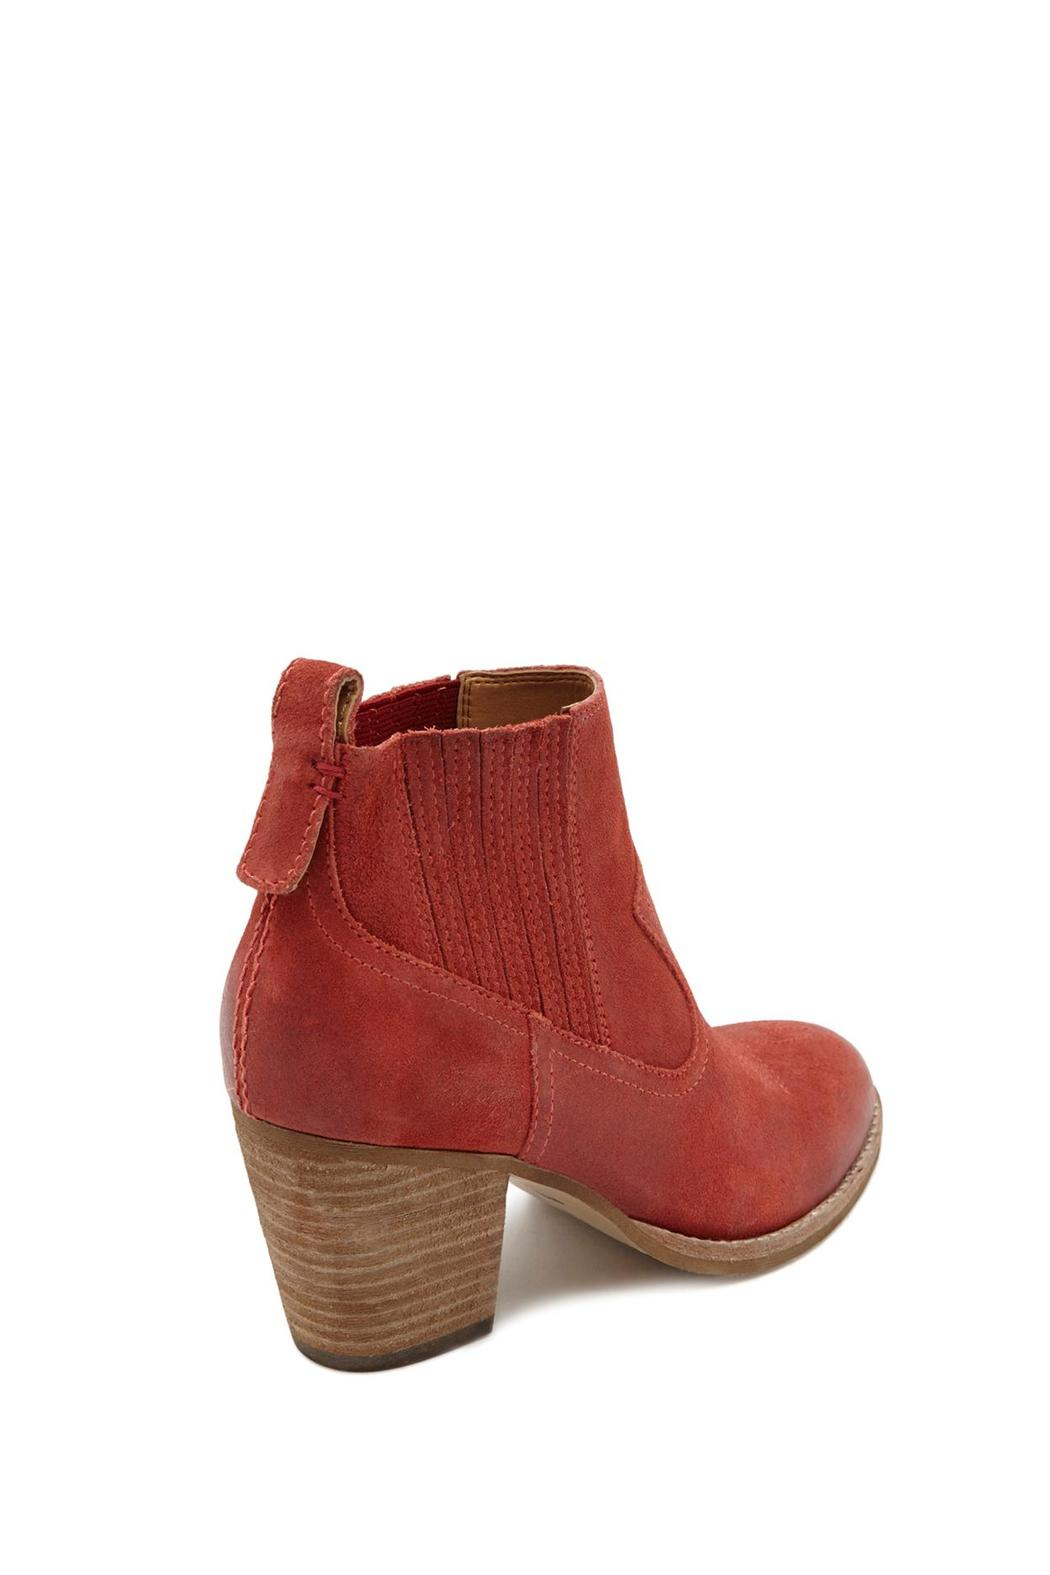 5413223f8 Dolce Vita Jones Ankle Bootie from Hudson Valley by Bfree — Shoptiques